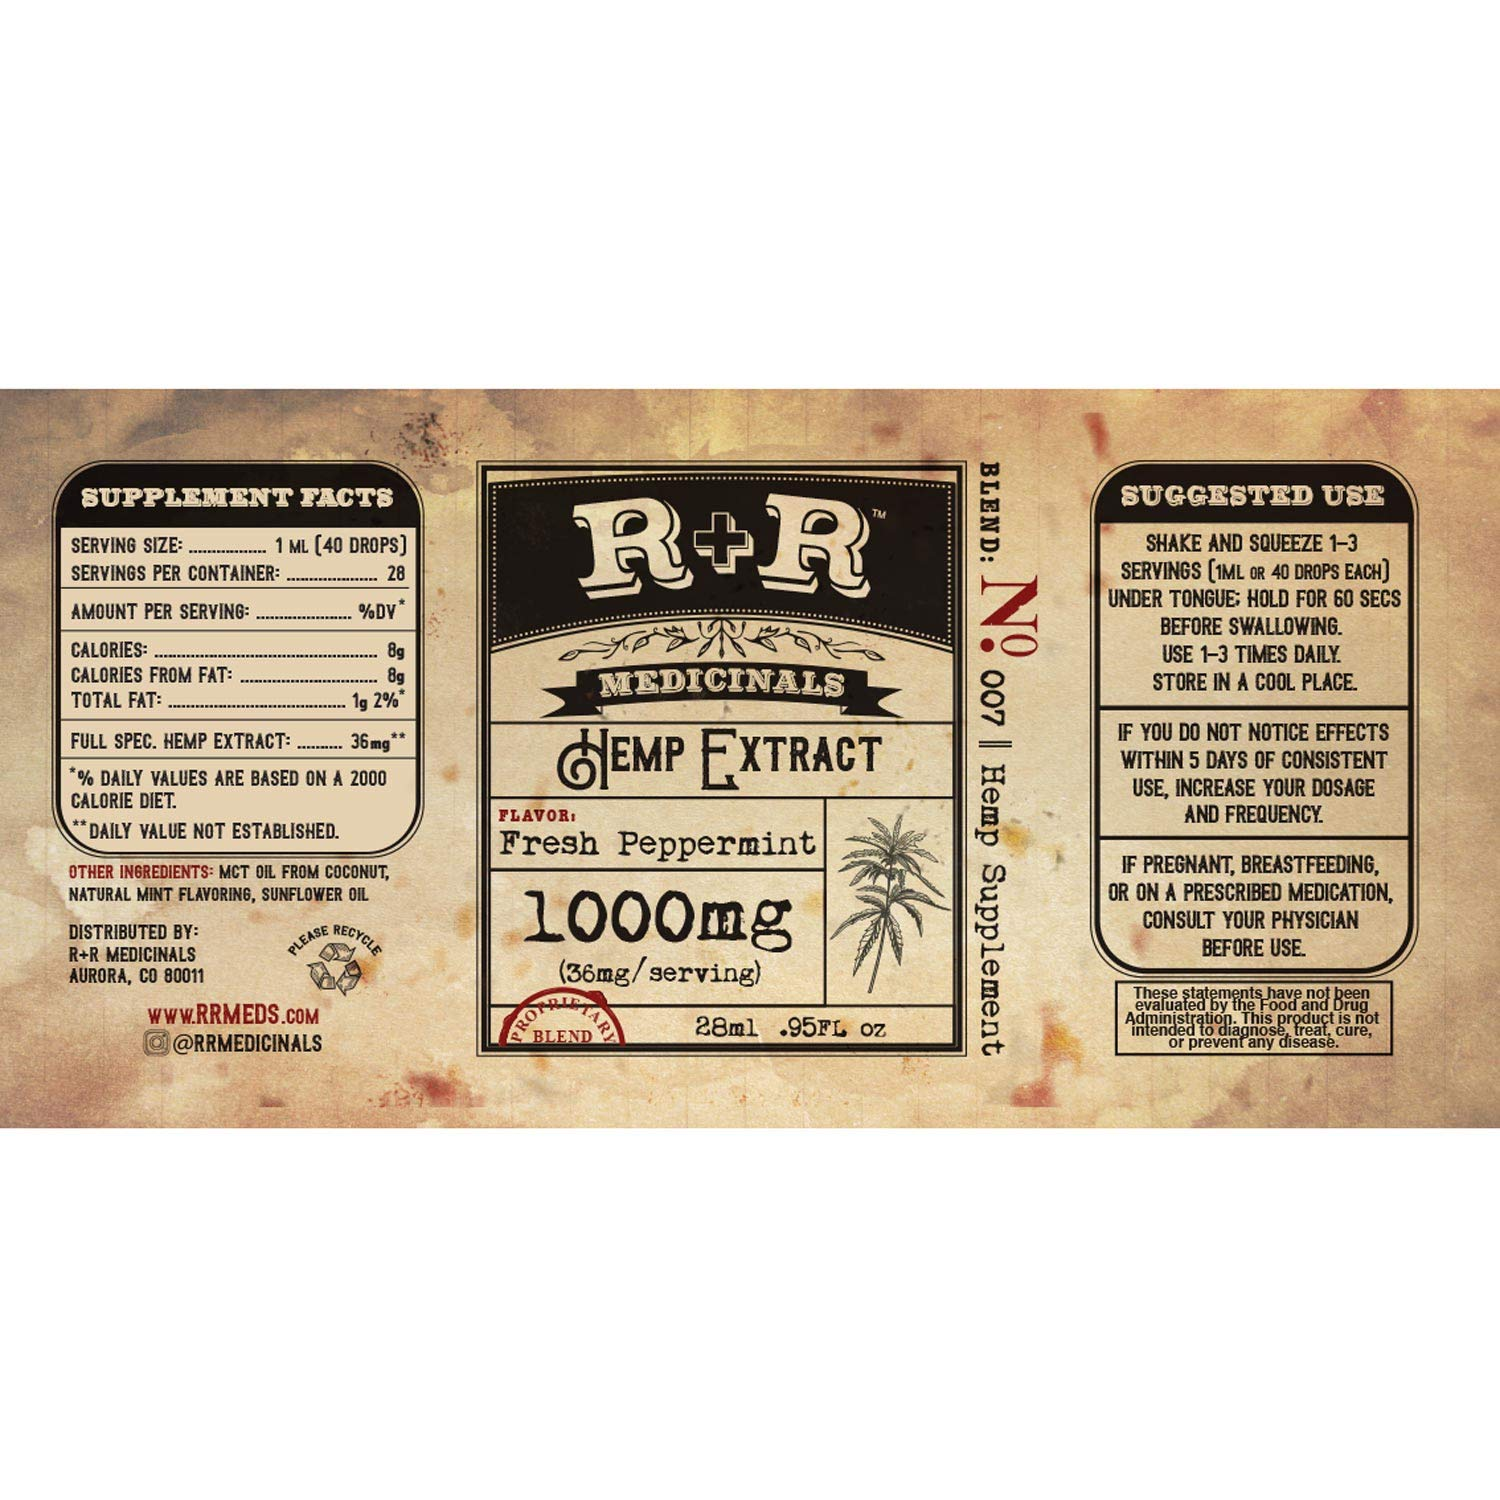 Hemp Oil 1000mg :: Hemp Oil for Pain :: Stress Relief, Mood Support, Healthy Sleep Patterns, Skin Care (1000mg, 36mg per Serving x 28 Servings) : R+R Medicinals by R+R Medicinals (Image #3)